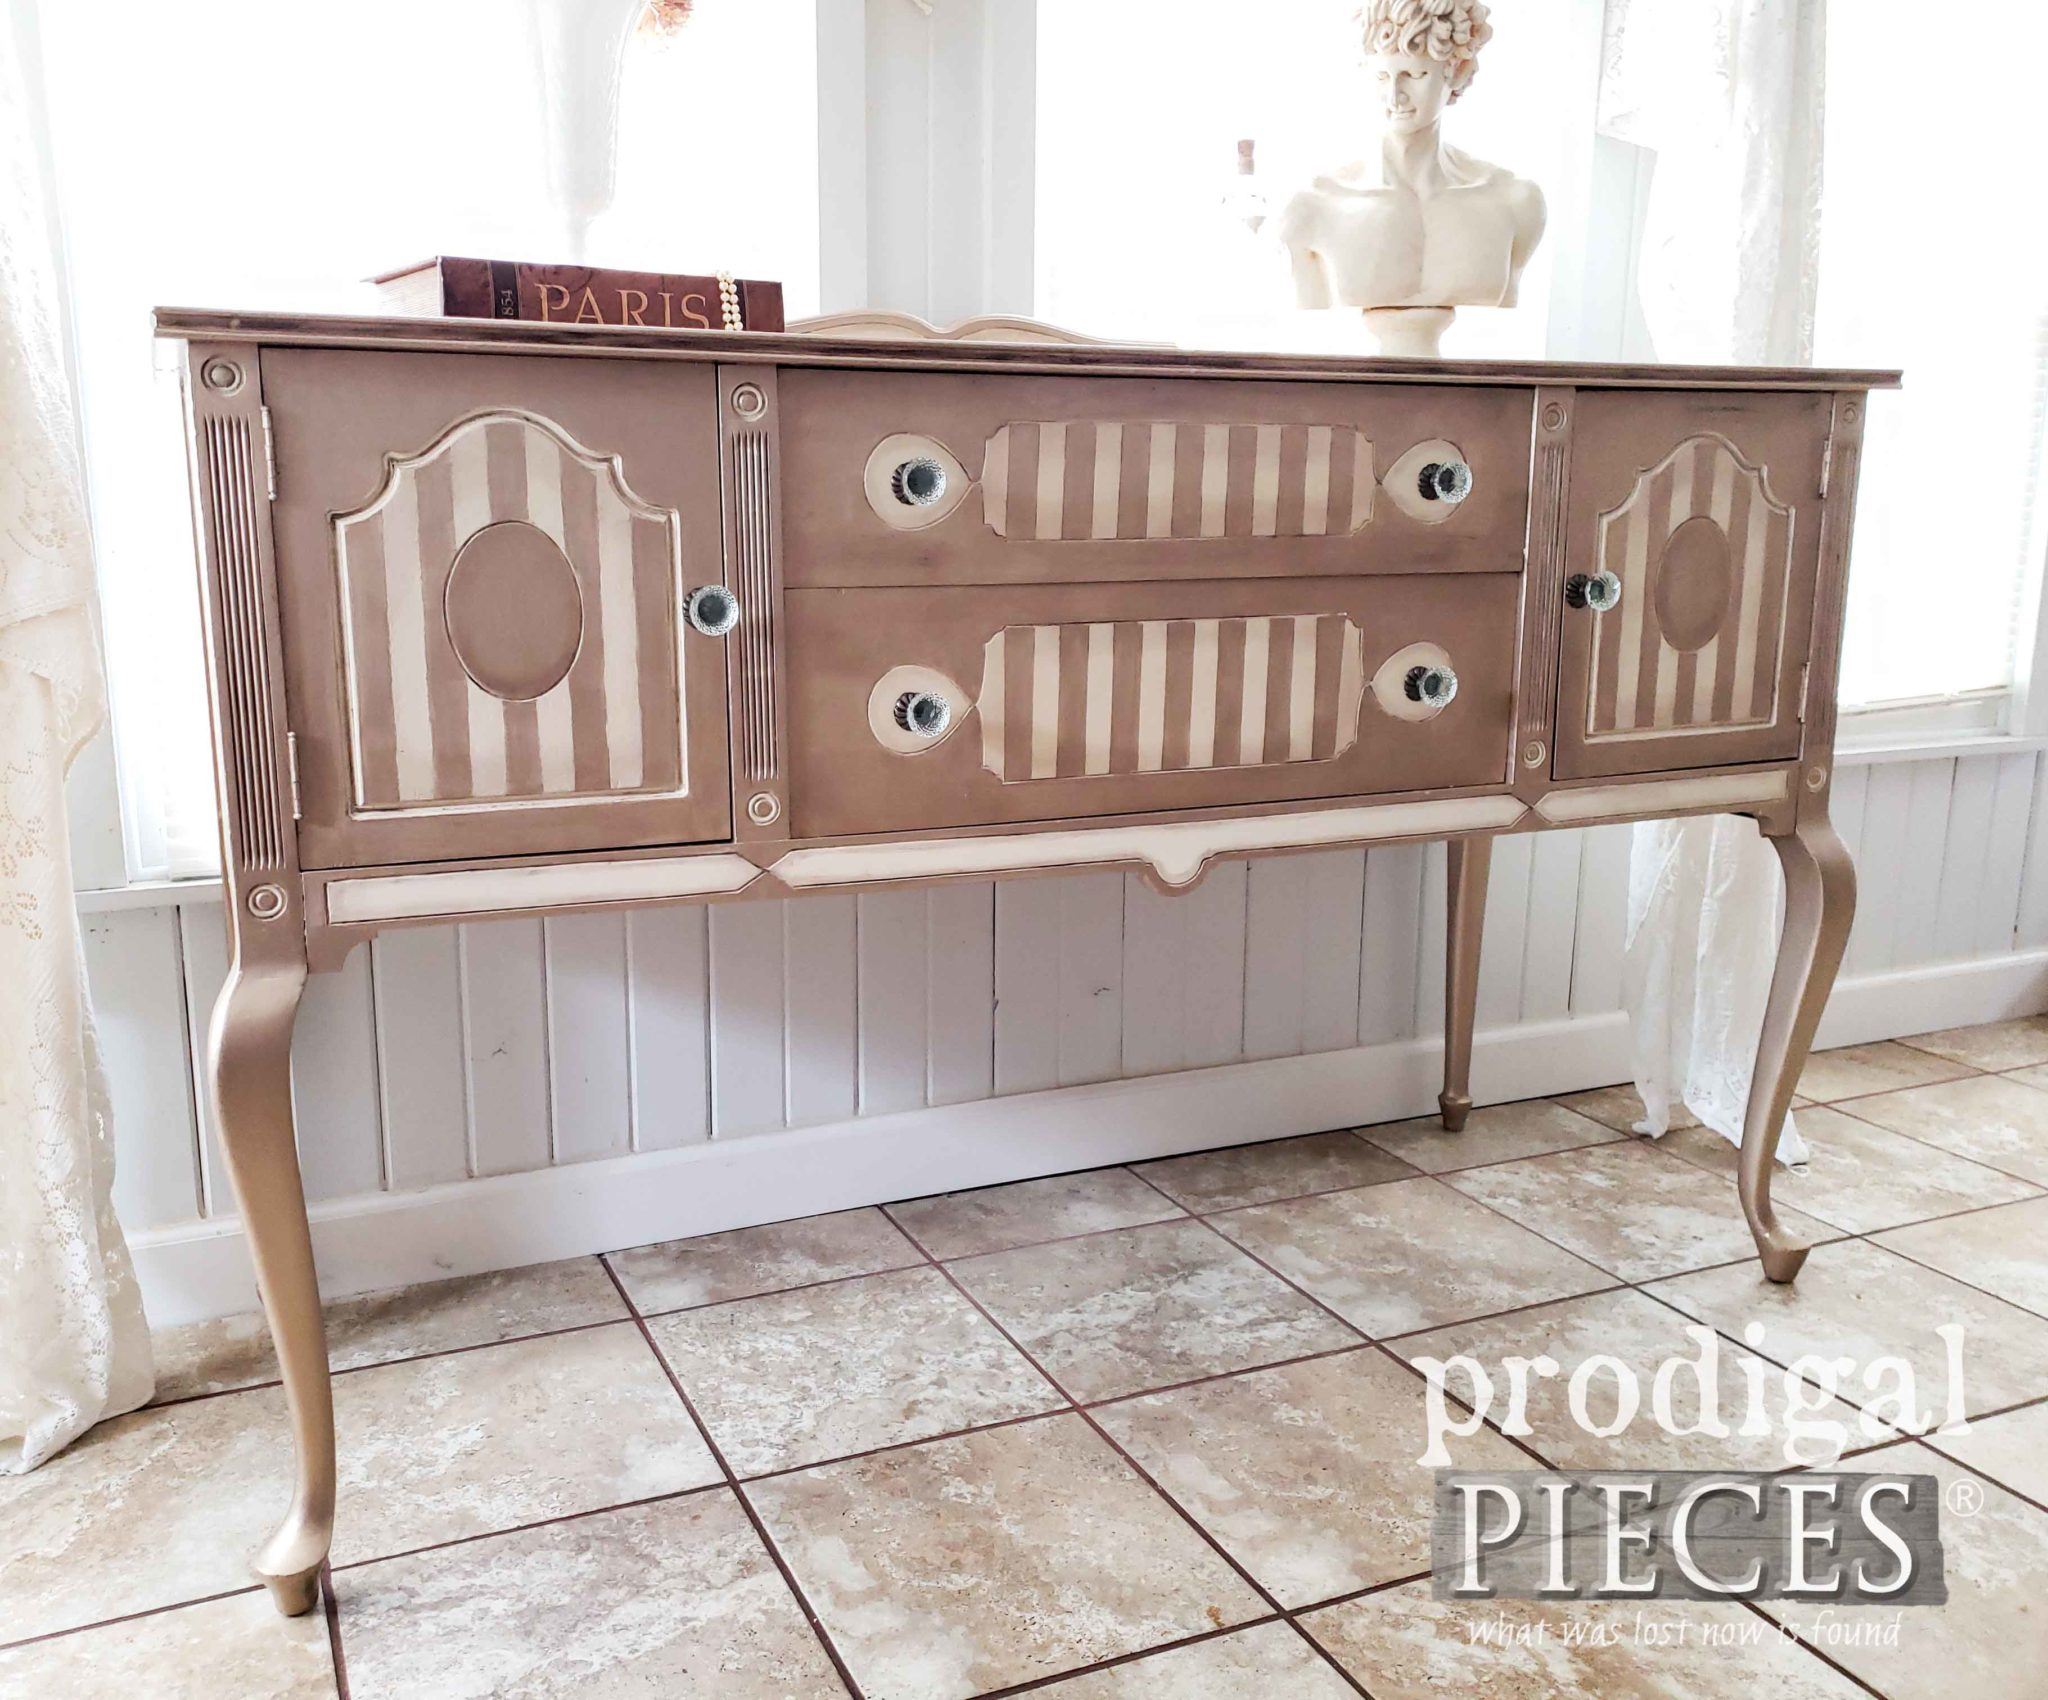 Gorgeous Metallic Queen Anne Buffet by Larissa of Prodigal Pieces | prodigalpieces.com #prodigalpieces #diy #furniture #home #homedecor #antique